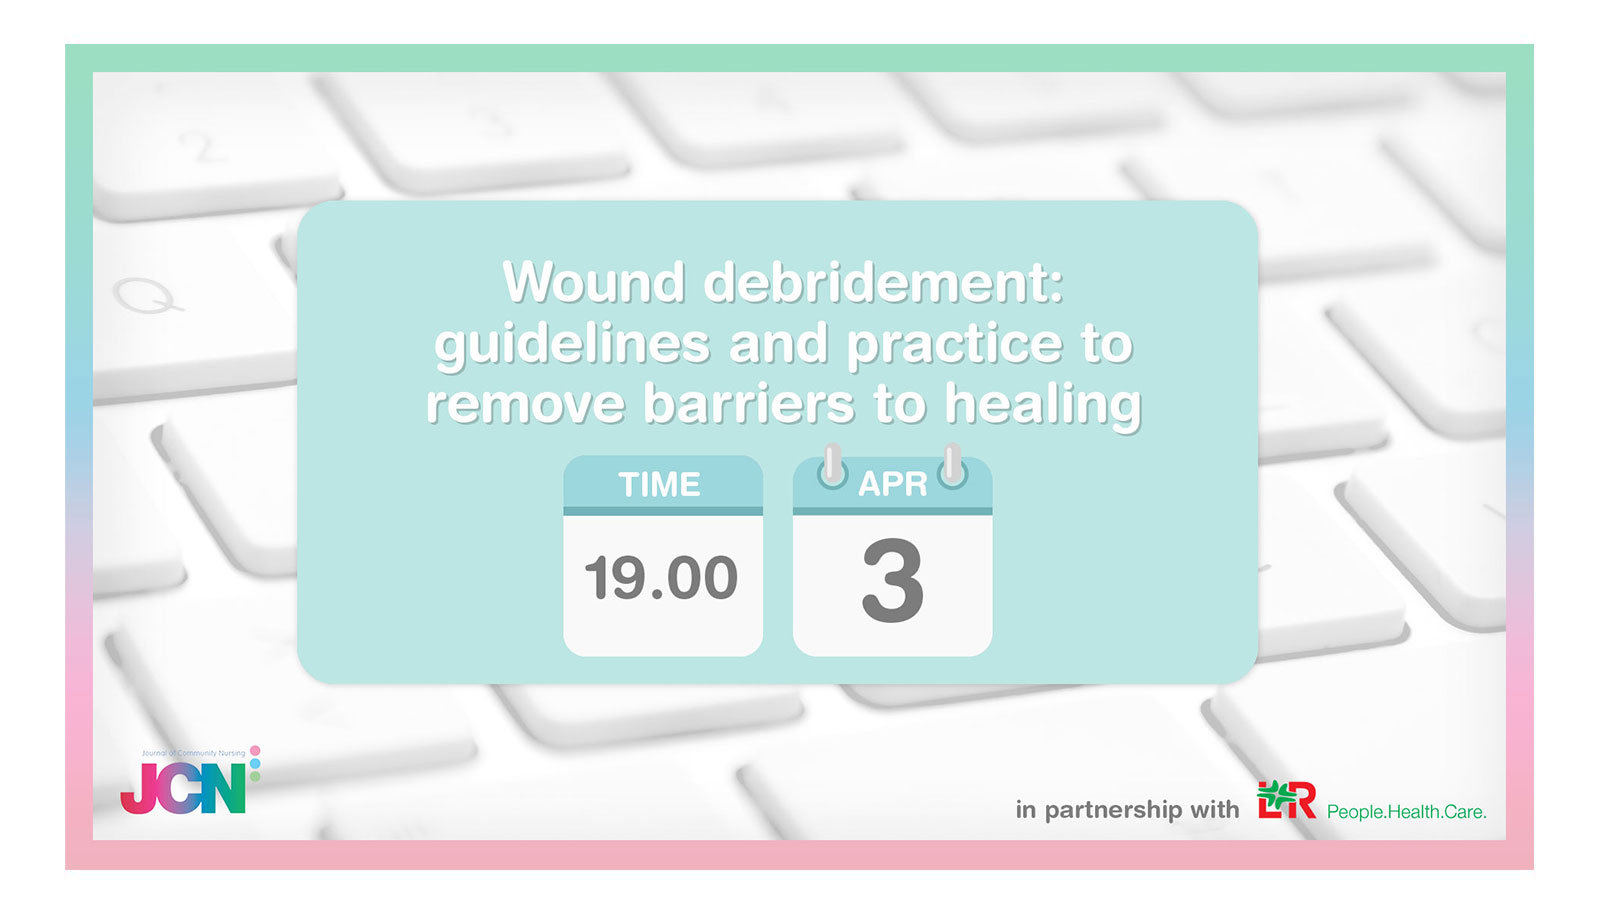 Facebook Live: Wound debridement: guidelines and practice to remove barriers to healing